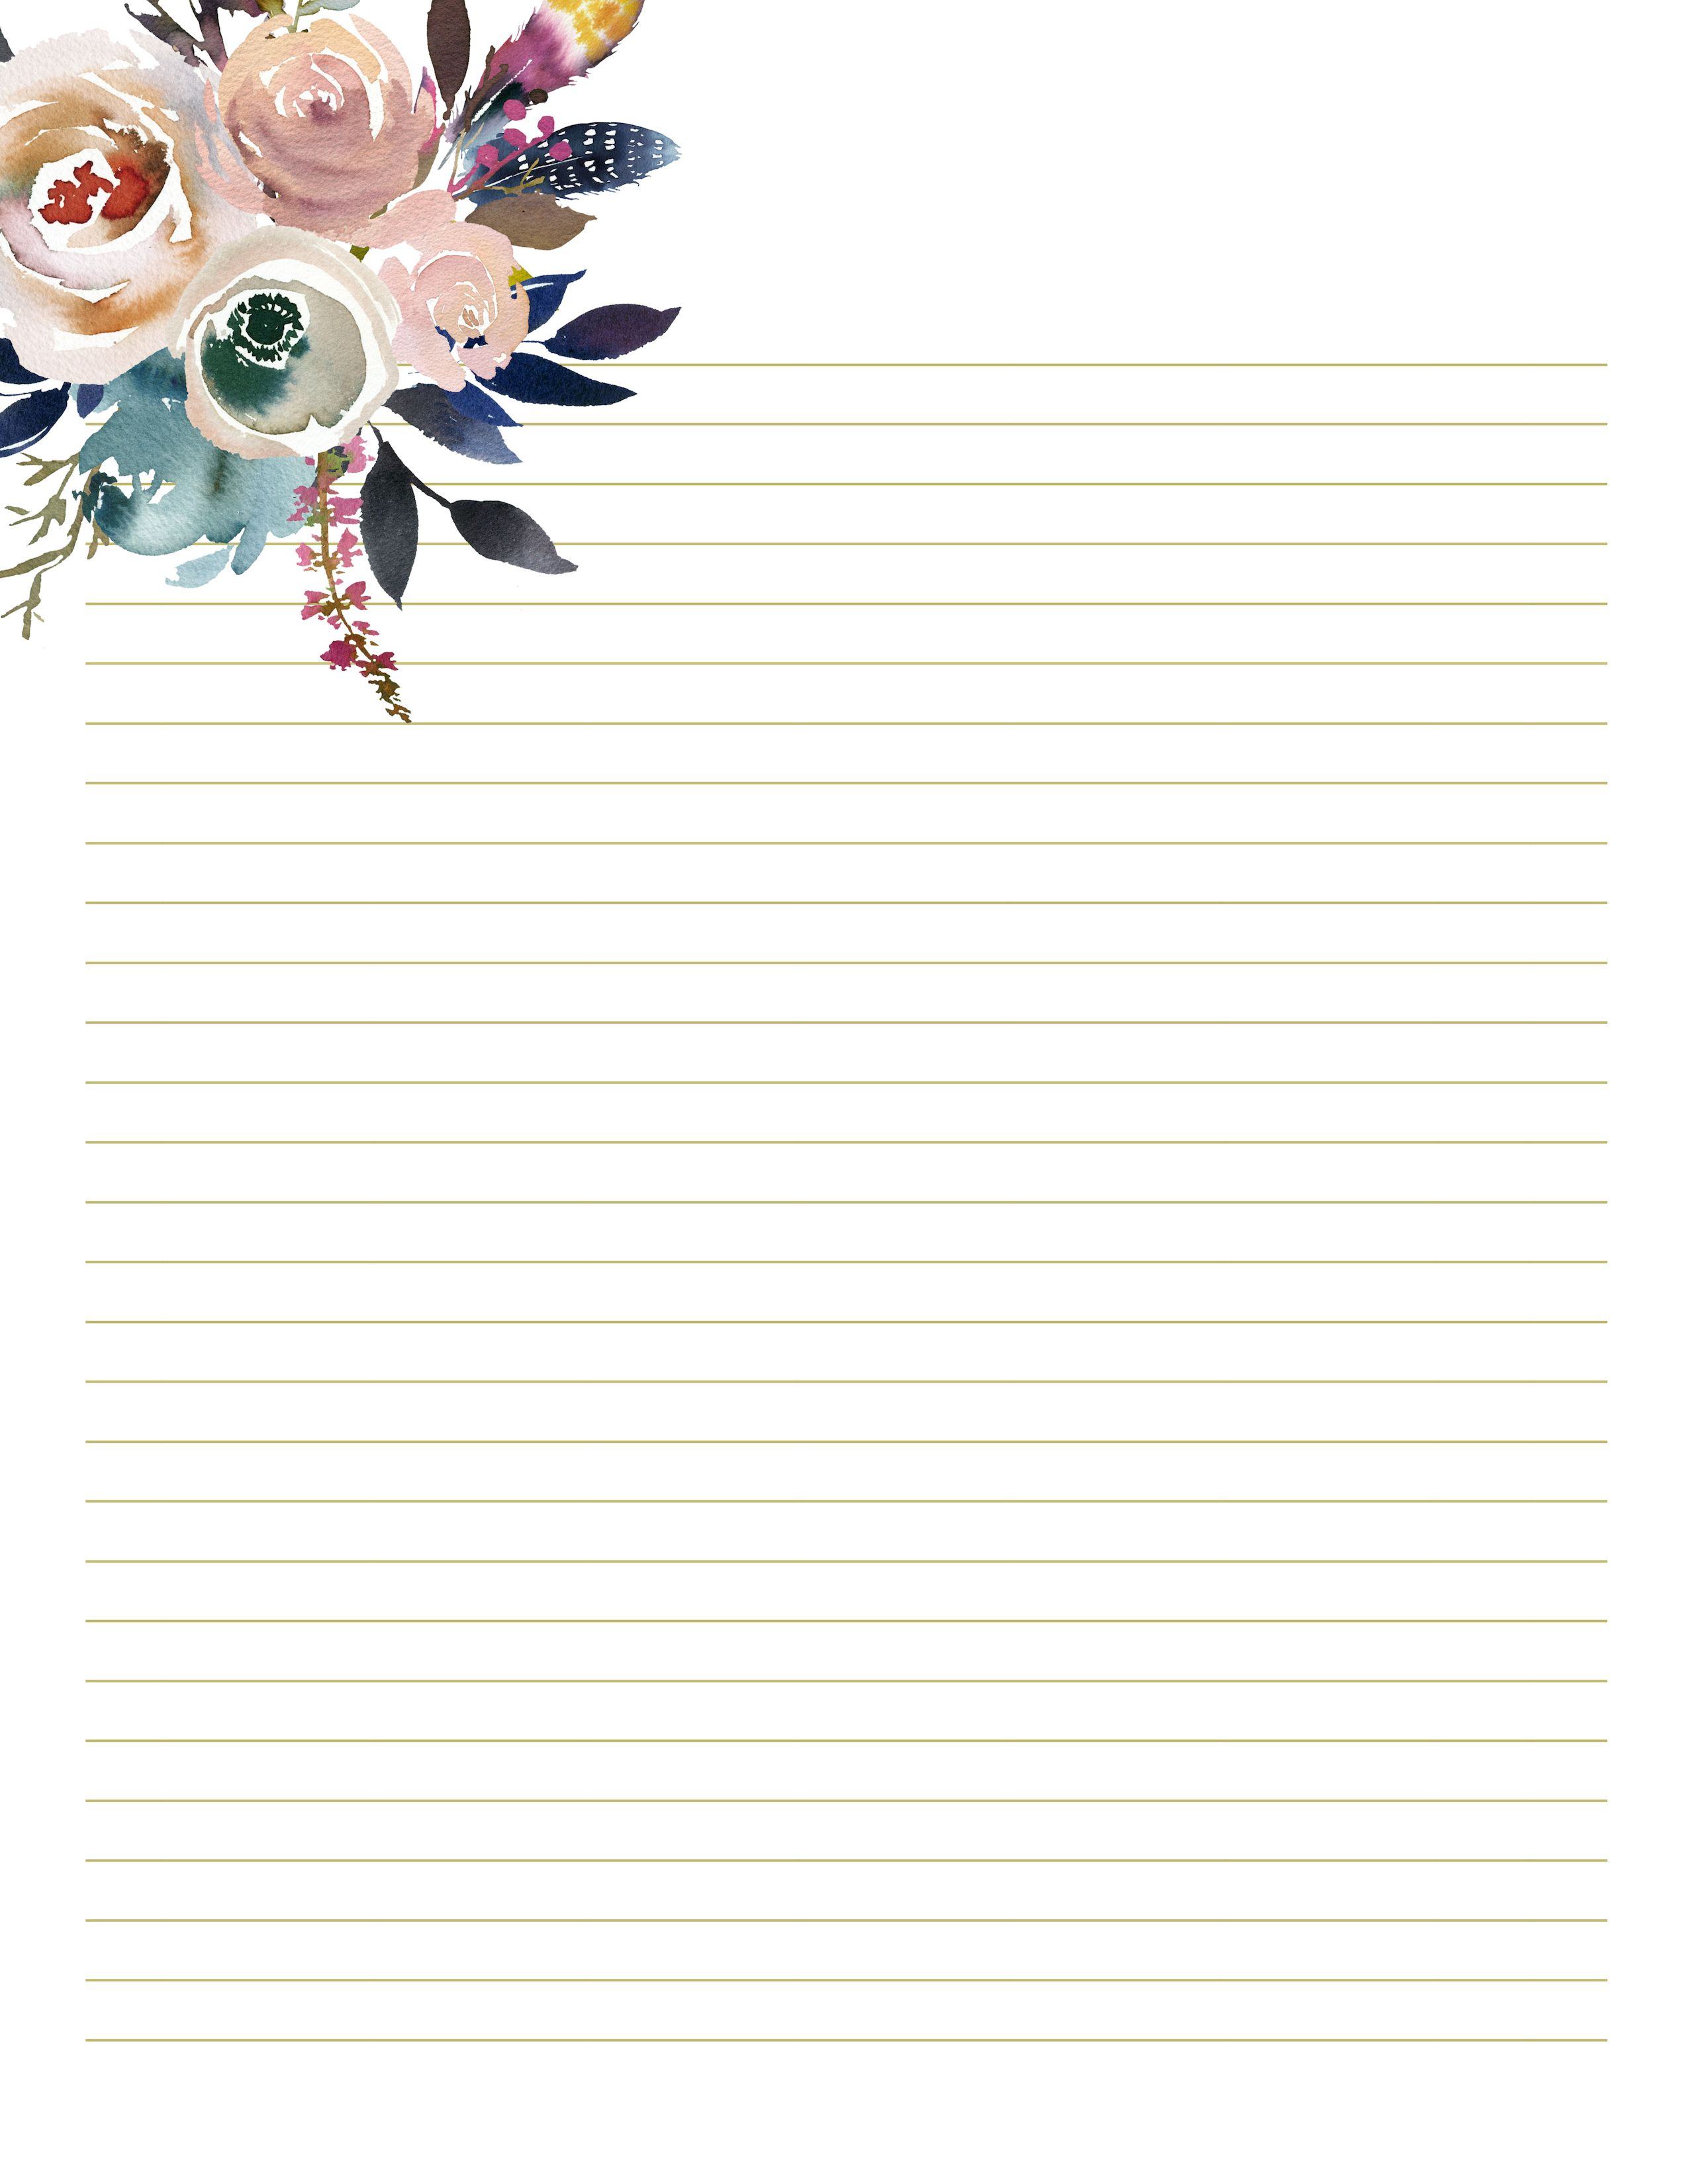 It's just a photo of Printable Stationery within journal